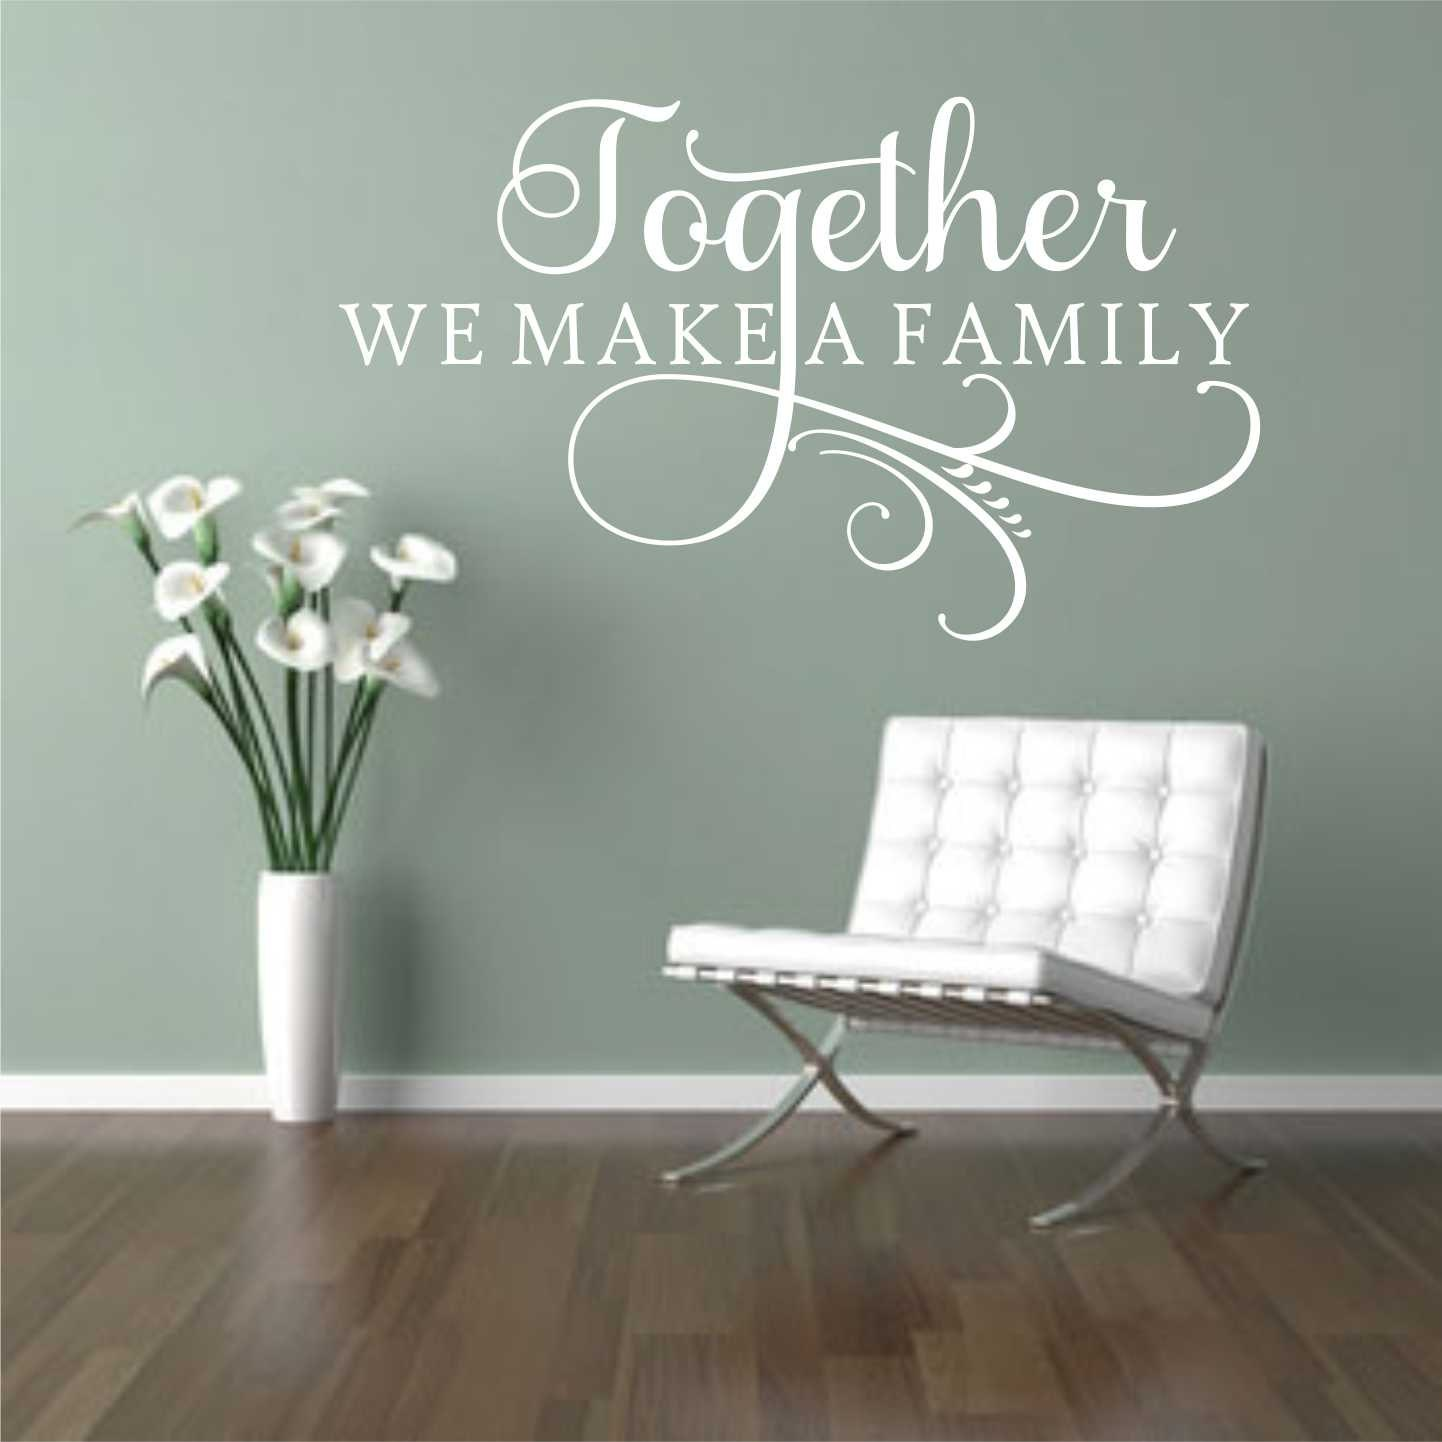 Together make Family Decal, Vinyl Wall Lettering, Vinyl Wall Decals, Vinyl  Decals, Vinyl Lettering, Wall Decals, Swirl Decal, Family Decal